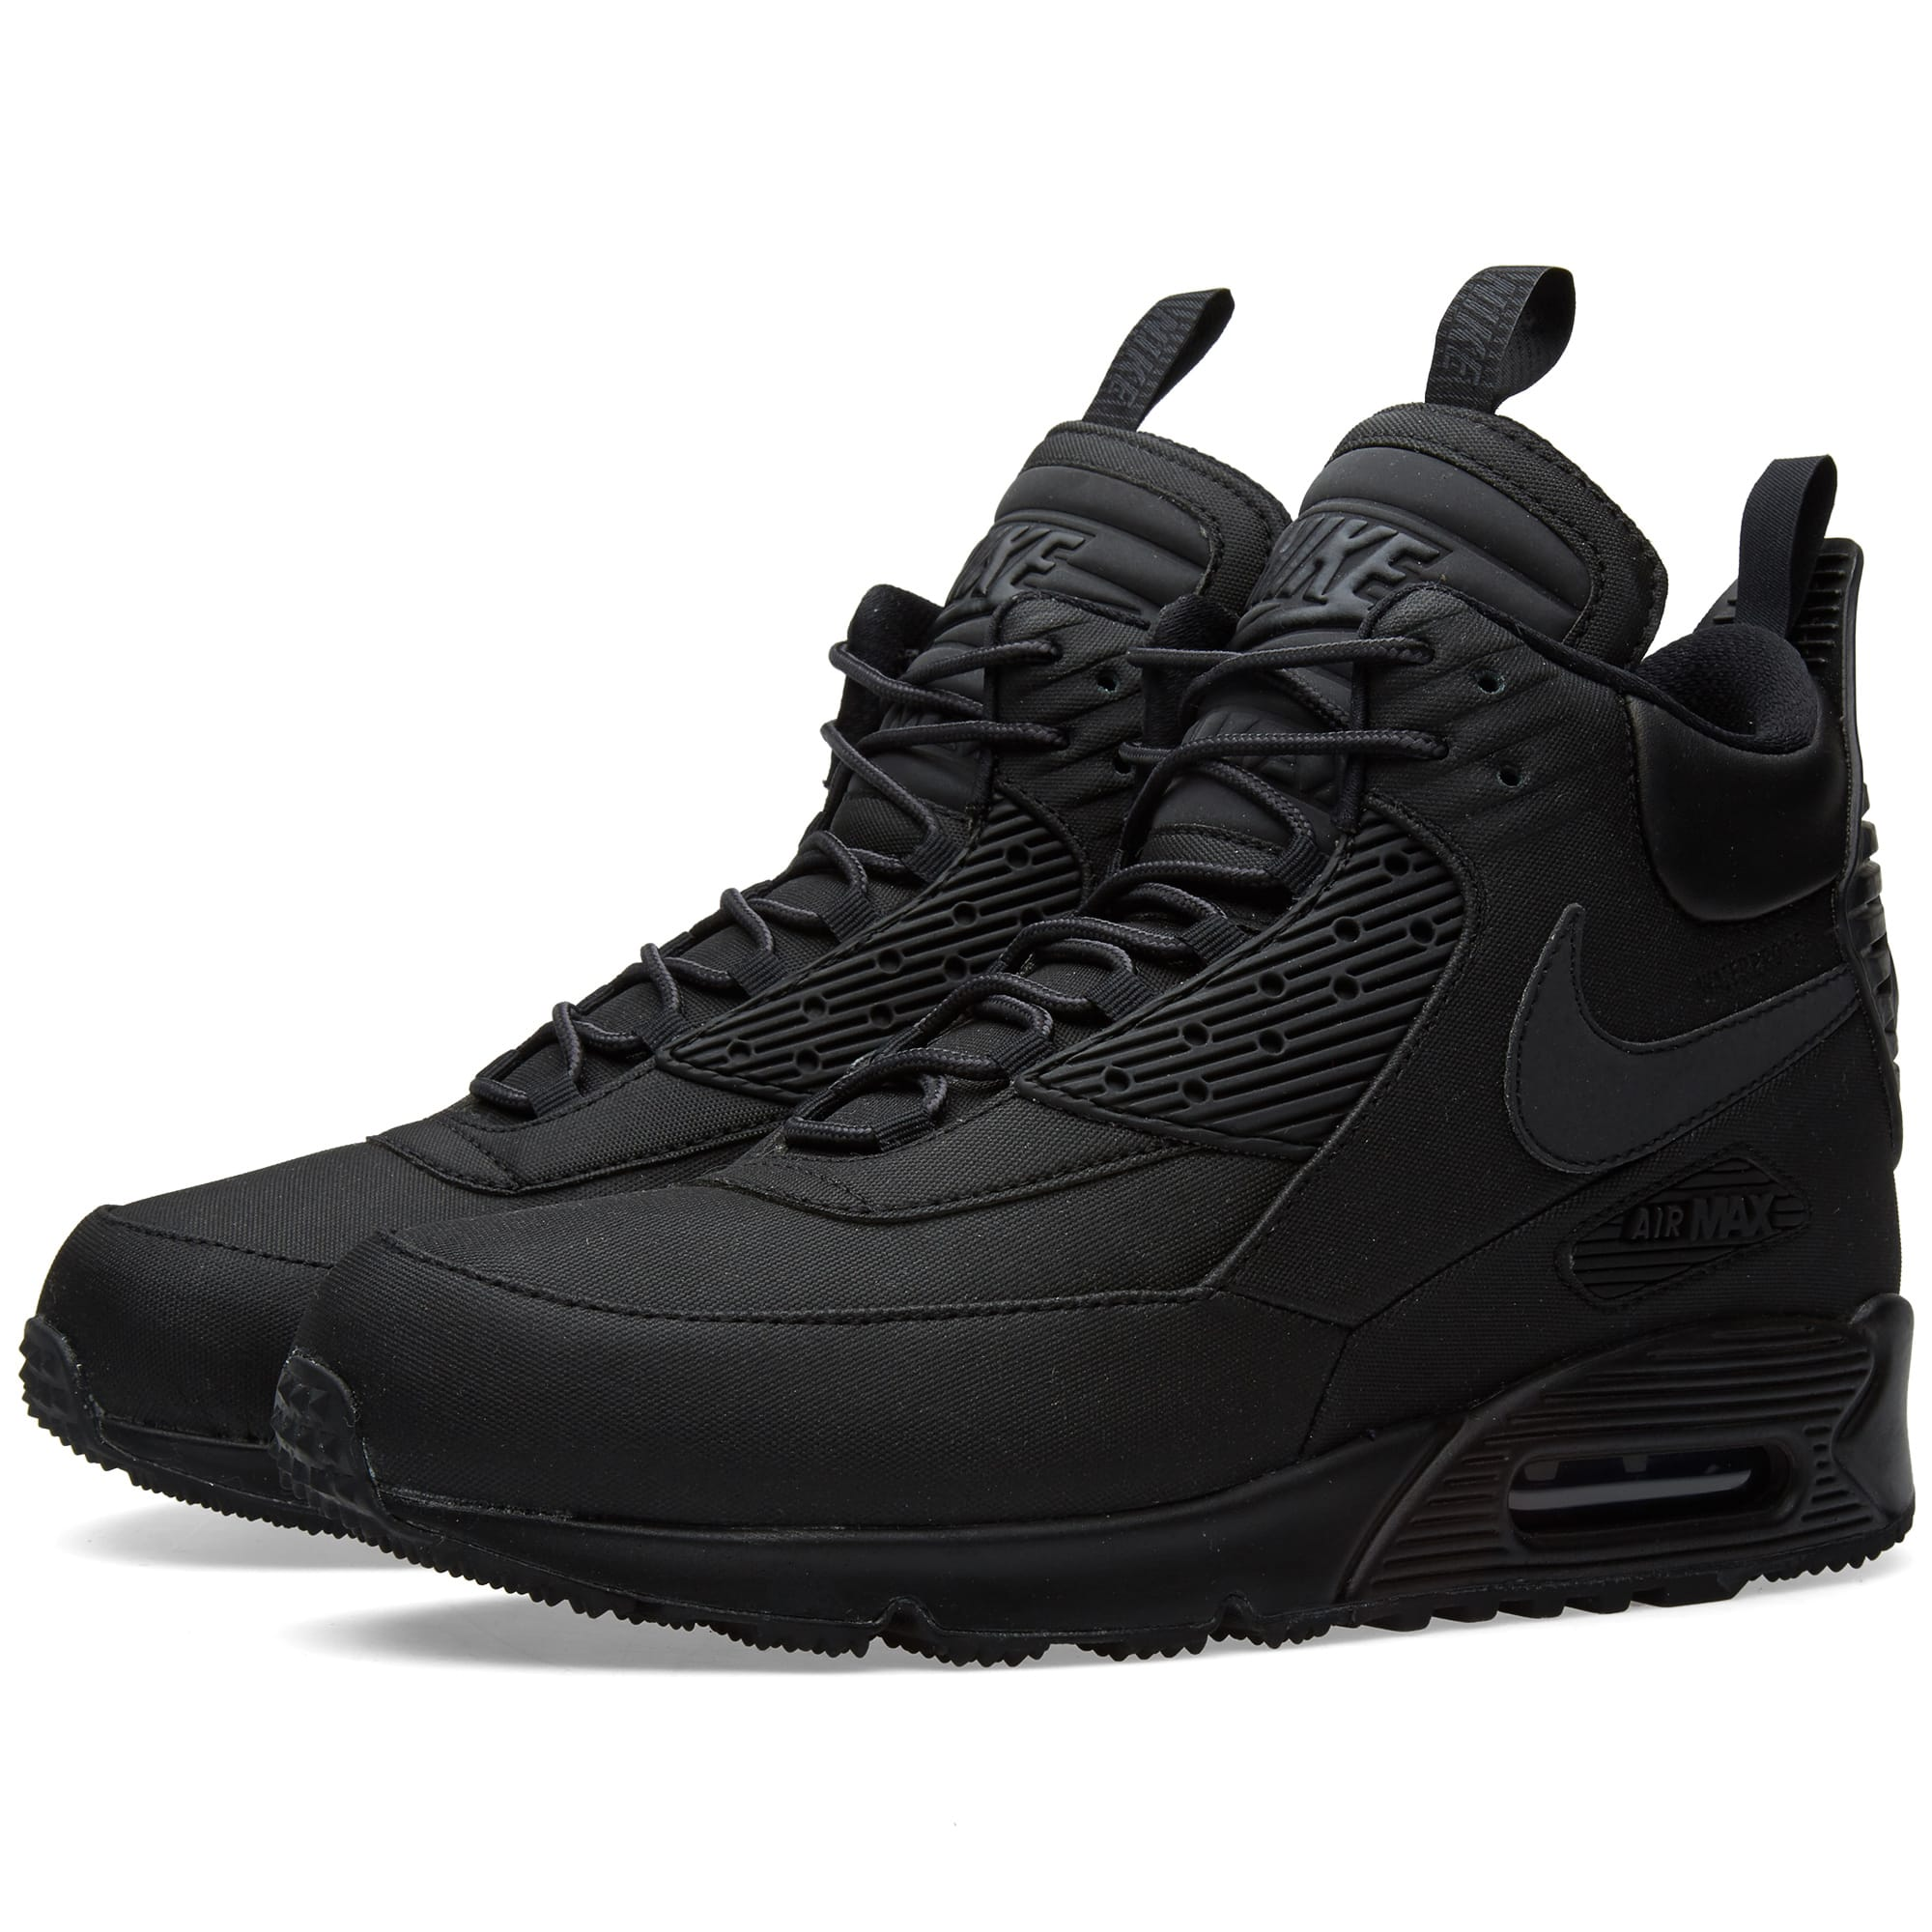 size 40 1feca 9d79f Nike Air Max 90 Sneakerboot Winter Black   END.